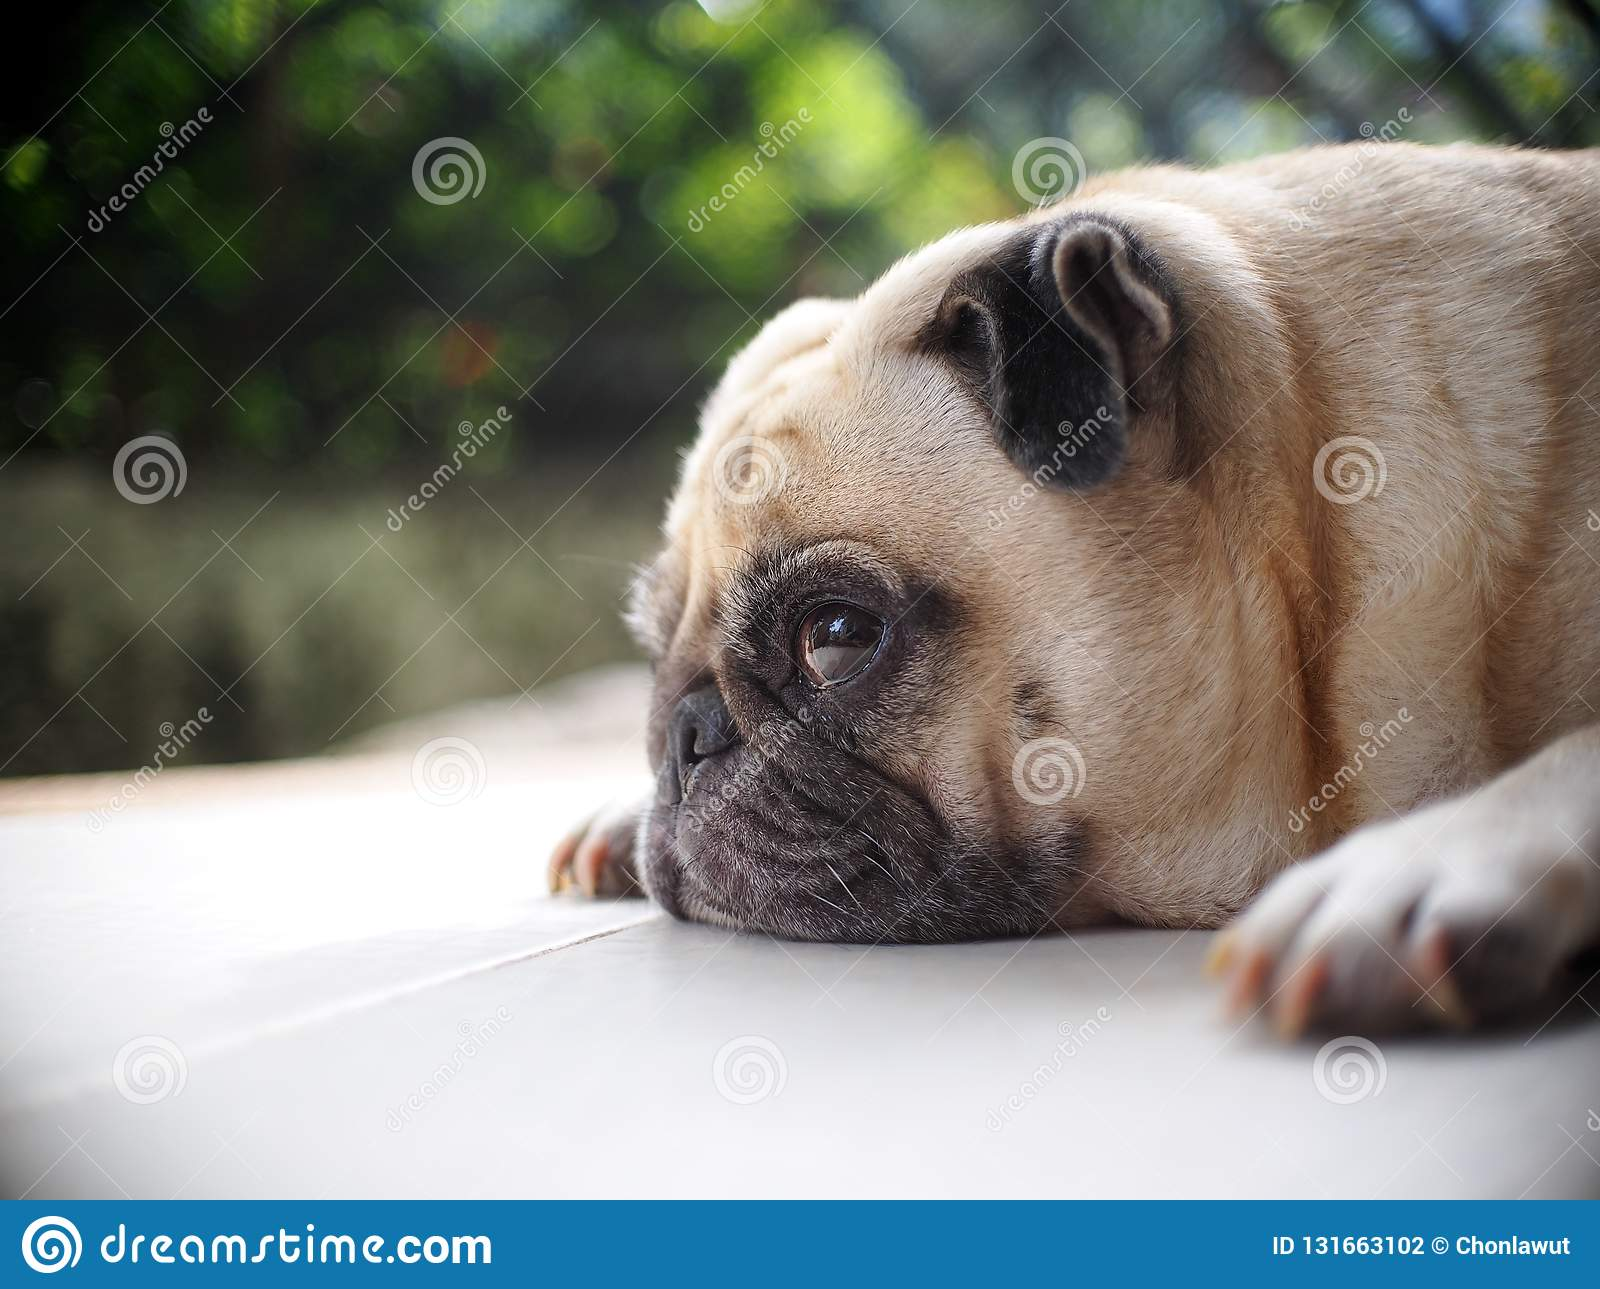 Portraits photo of a lovely white fat cute pug dog laying flat home garden floor making sad and lonesome face under natural sunlight outdoor shallow depth